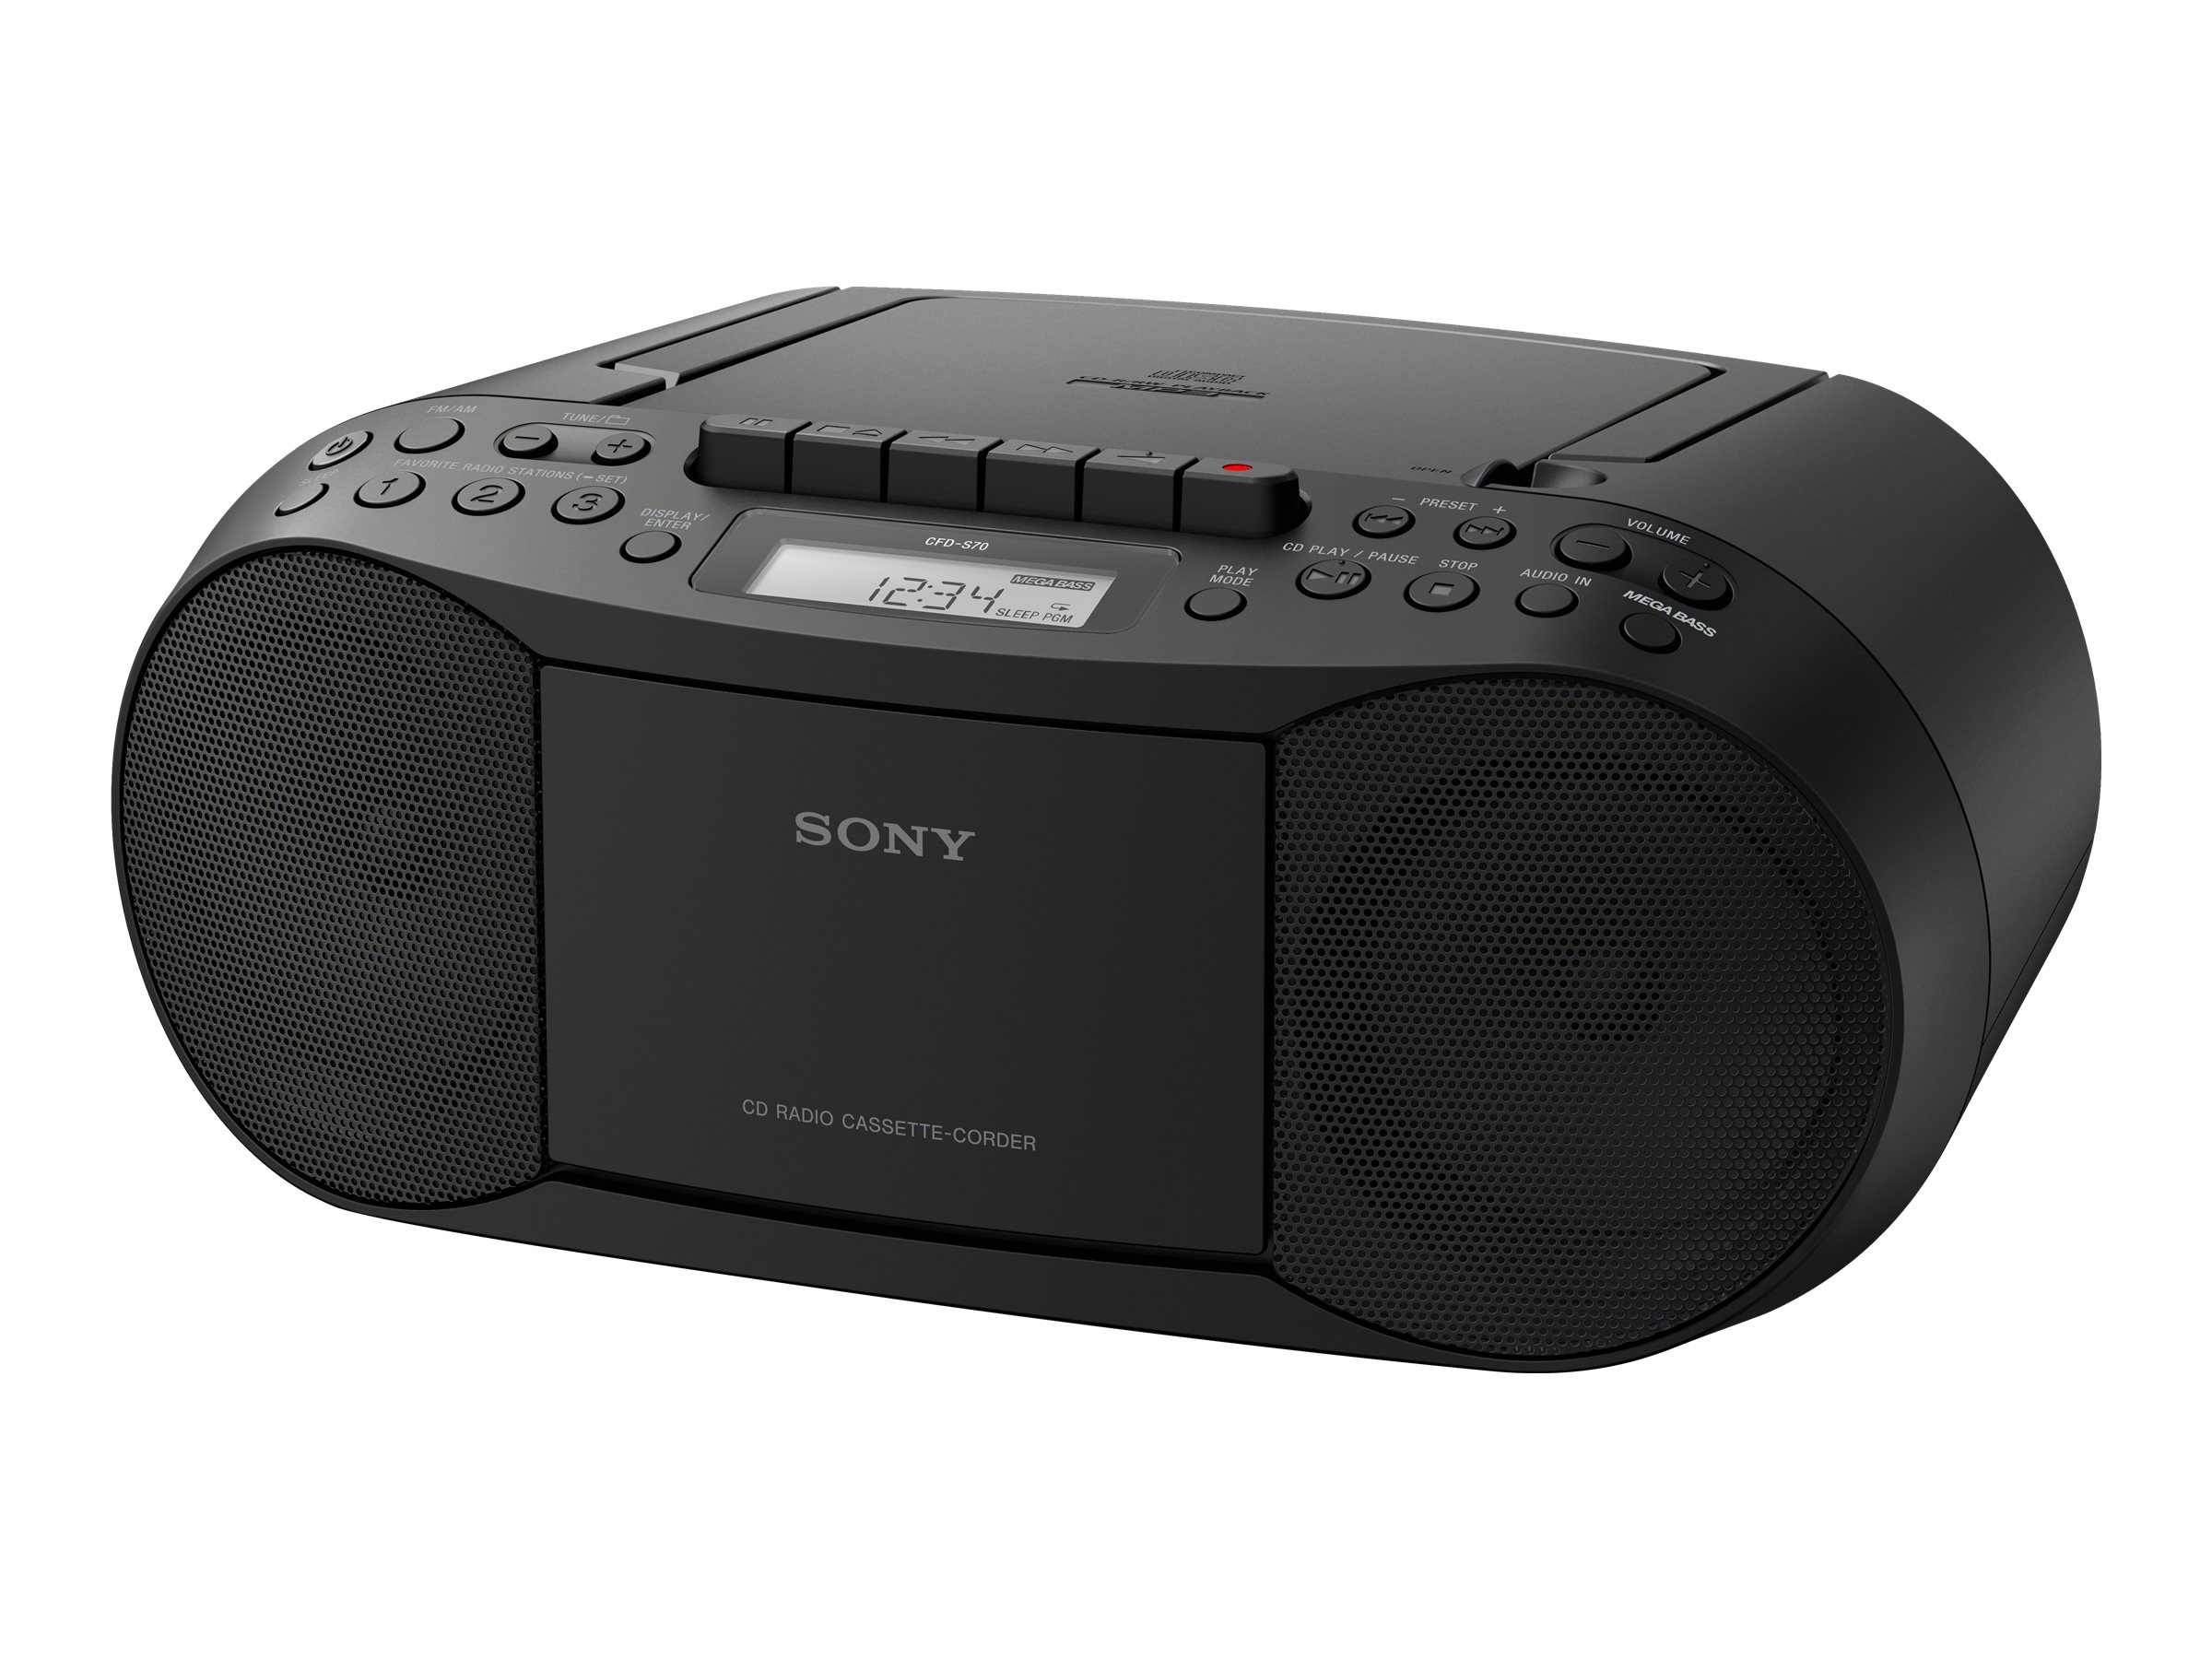 Leclerc Commande Best Of Radio Cd sony Radio Cd Noire Cfd S70w Of 22 Inspirant Leclerc Commande